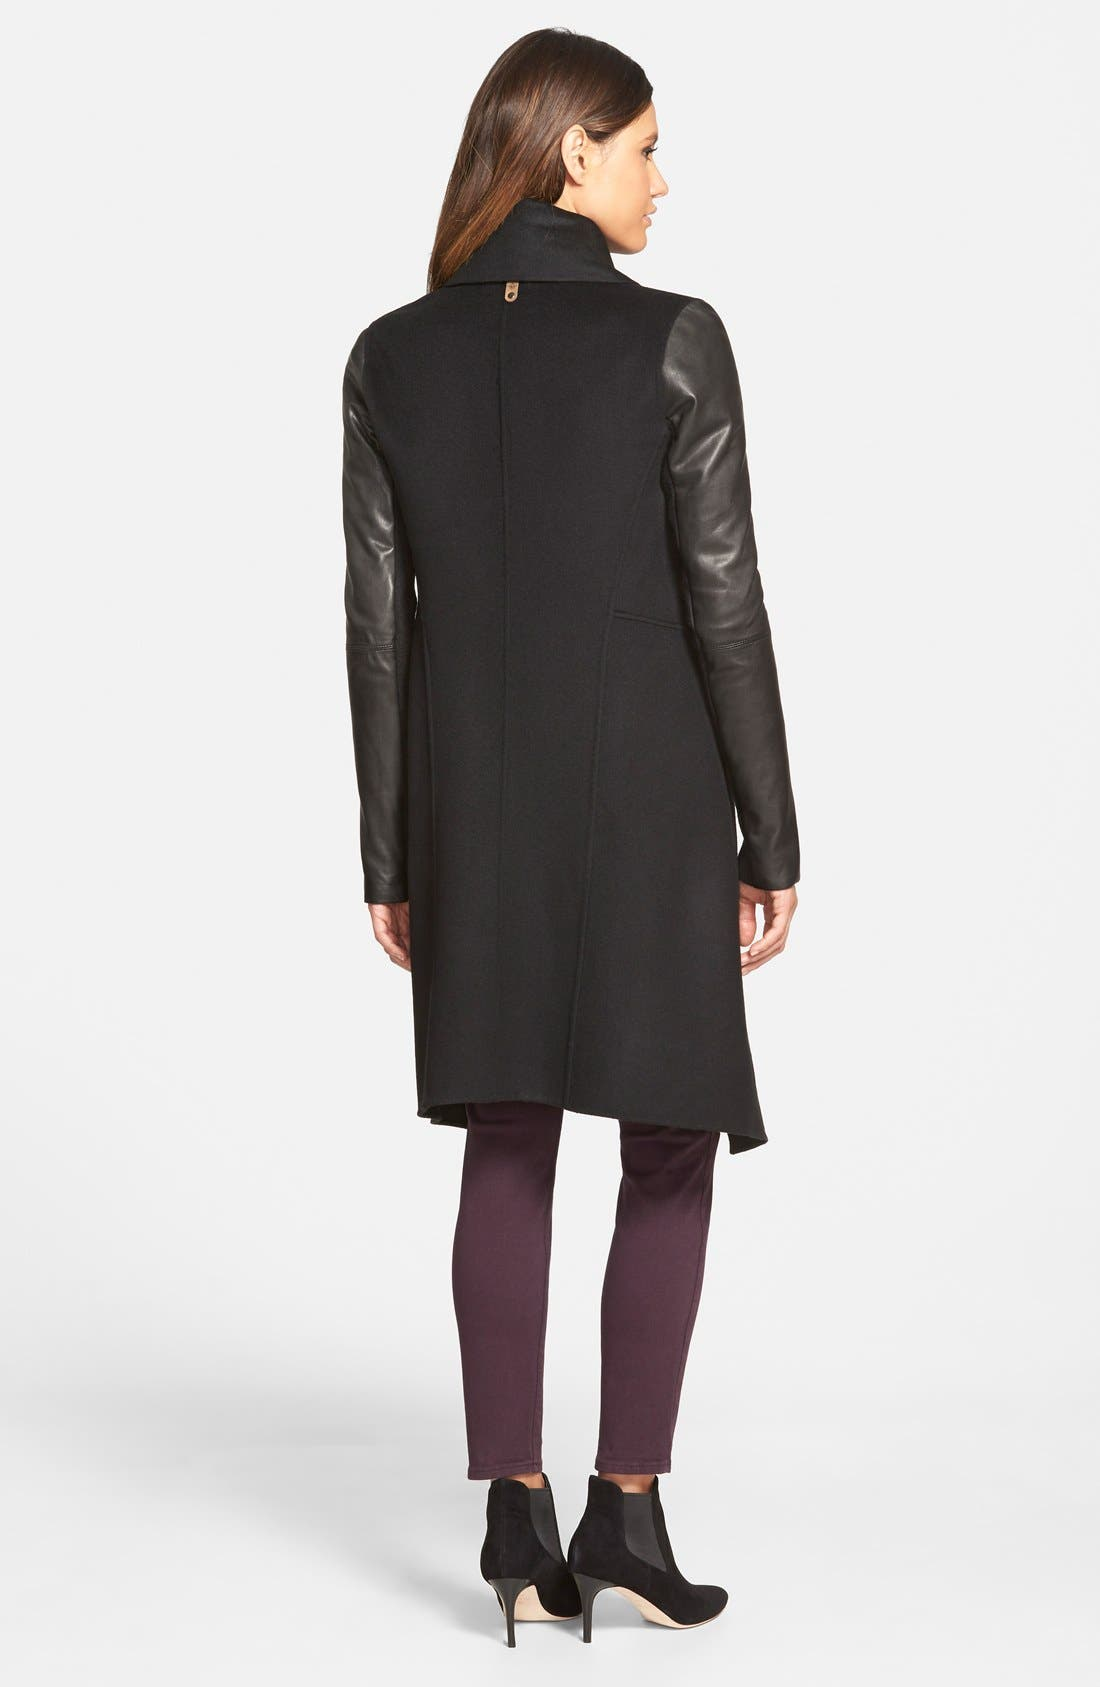 Wool Blend Coat with Leather Sleeves,                             Alternate thumbnail 3, color,                             001